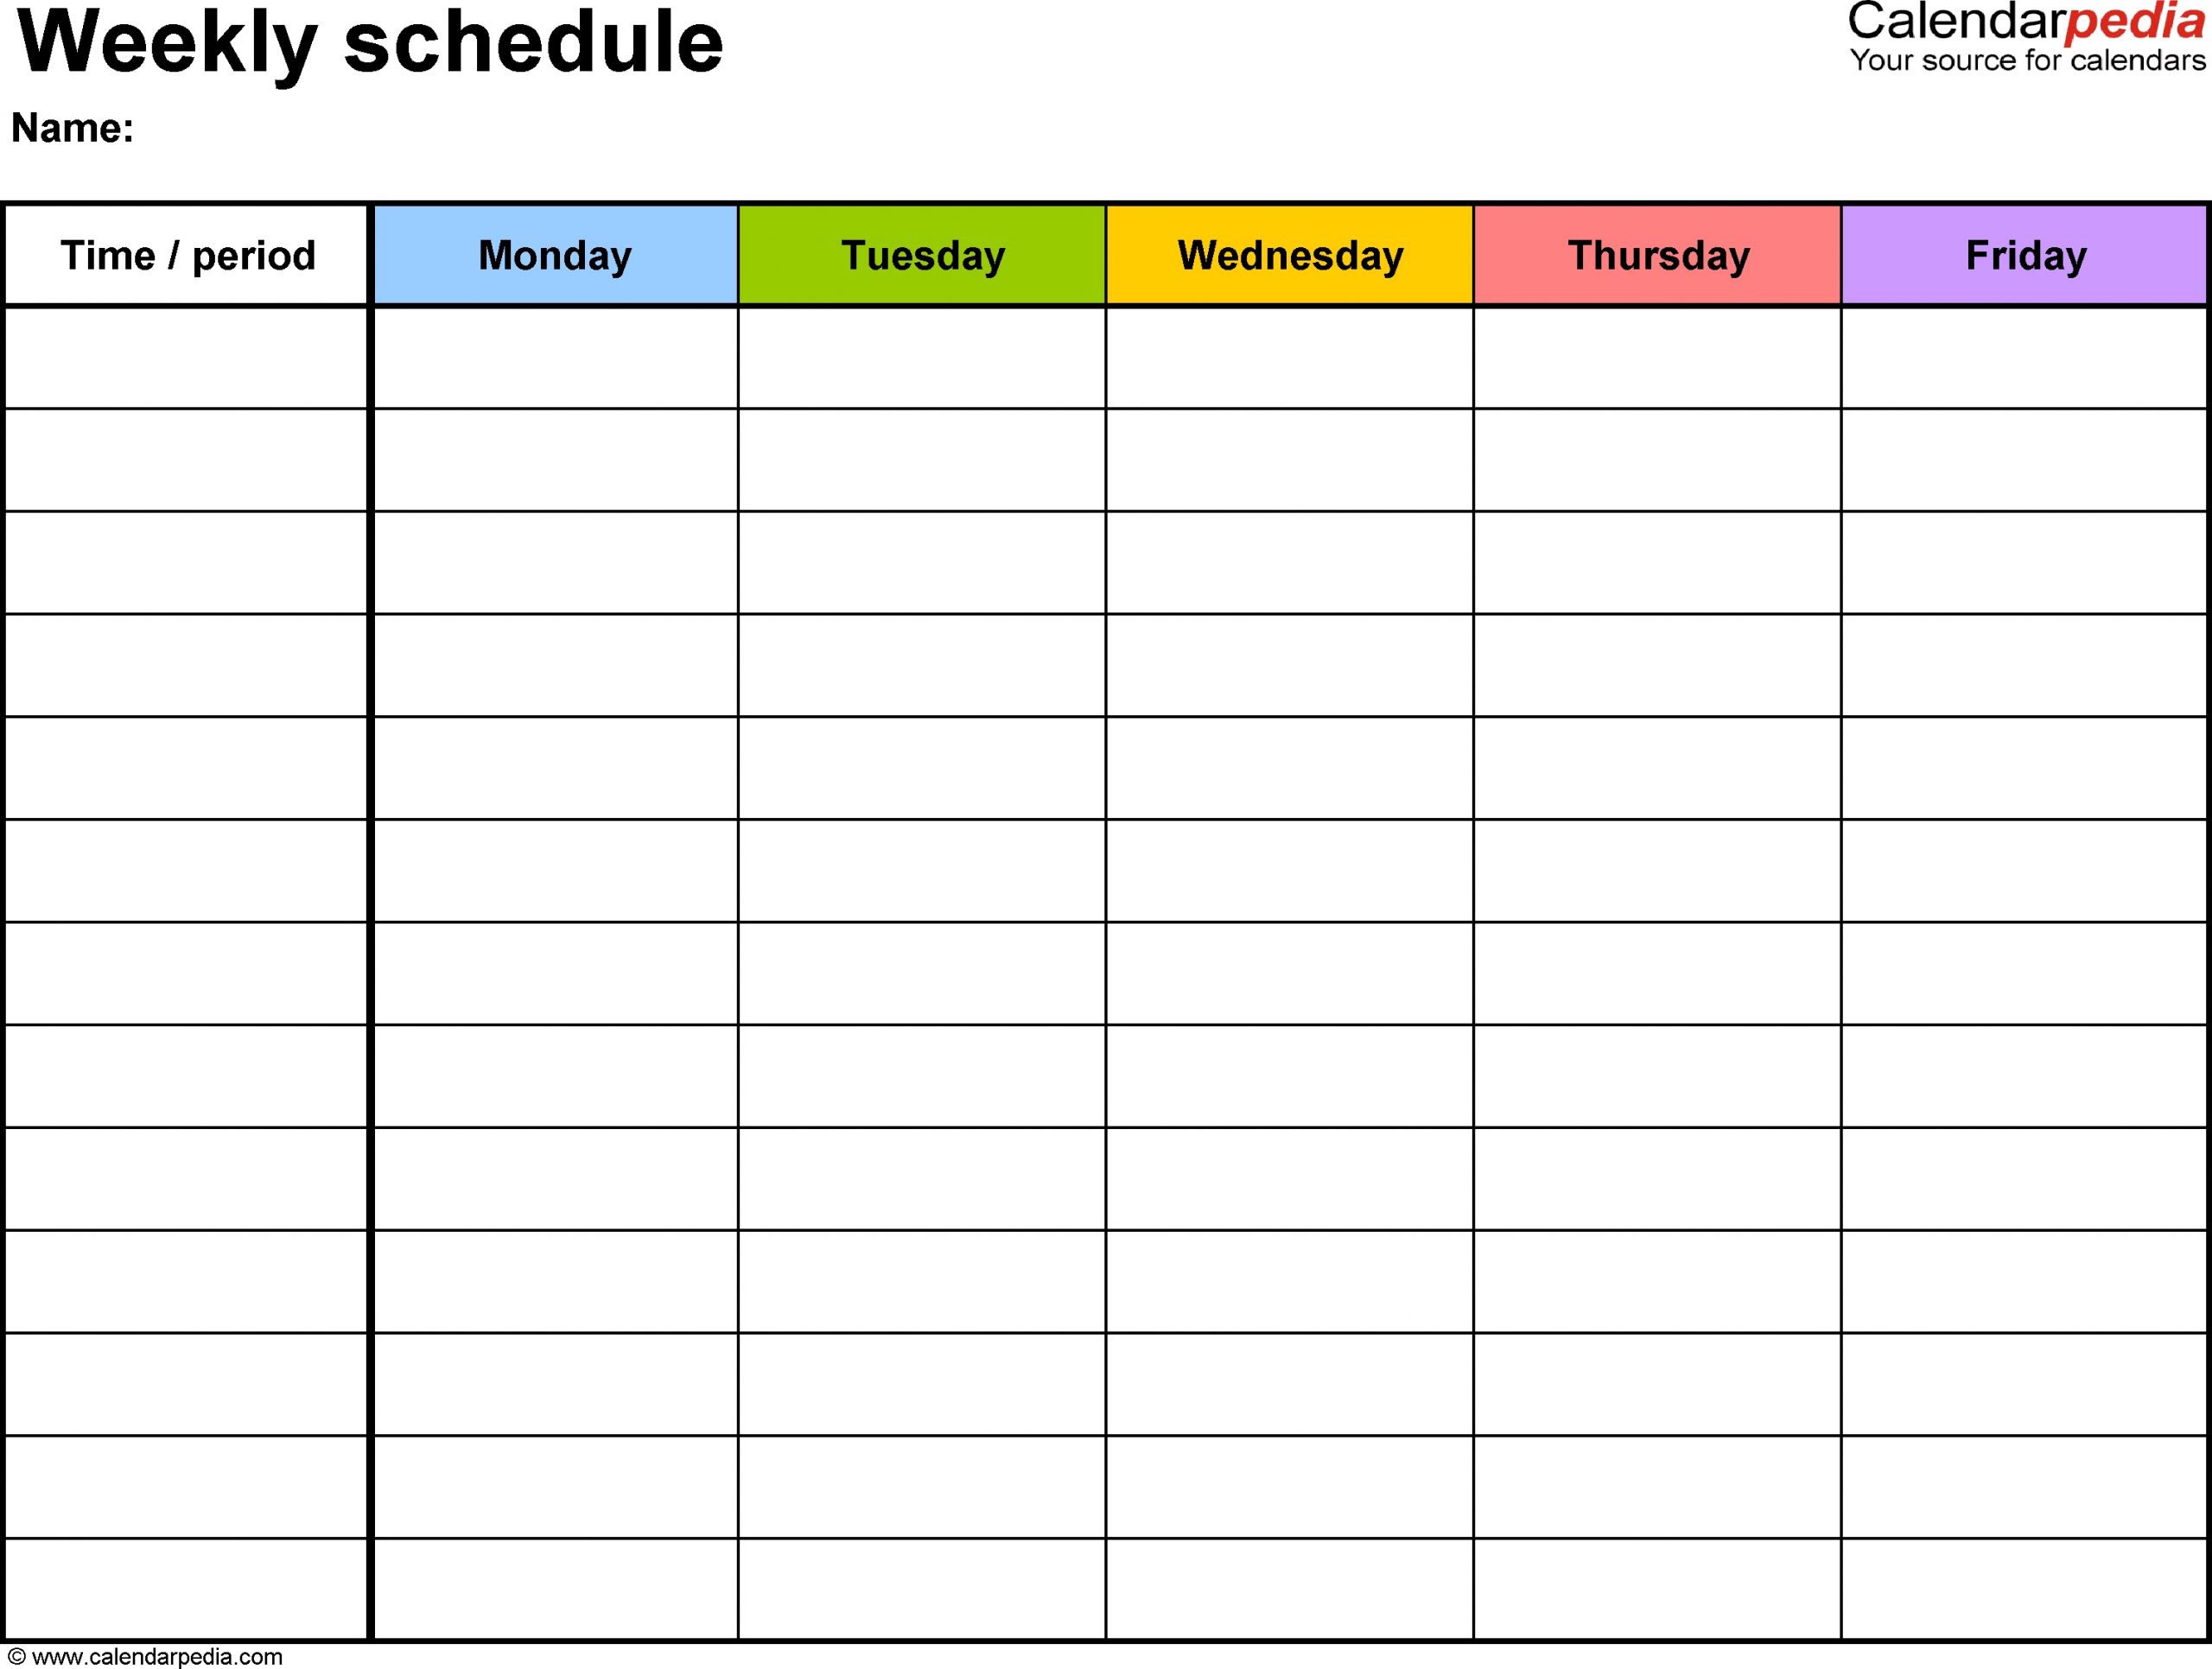 Time Slot Template Schedule Excel – Calendar Inspiration Schedule For A Day With Time Slots